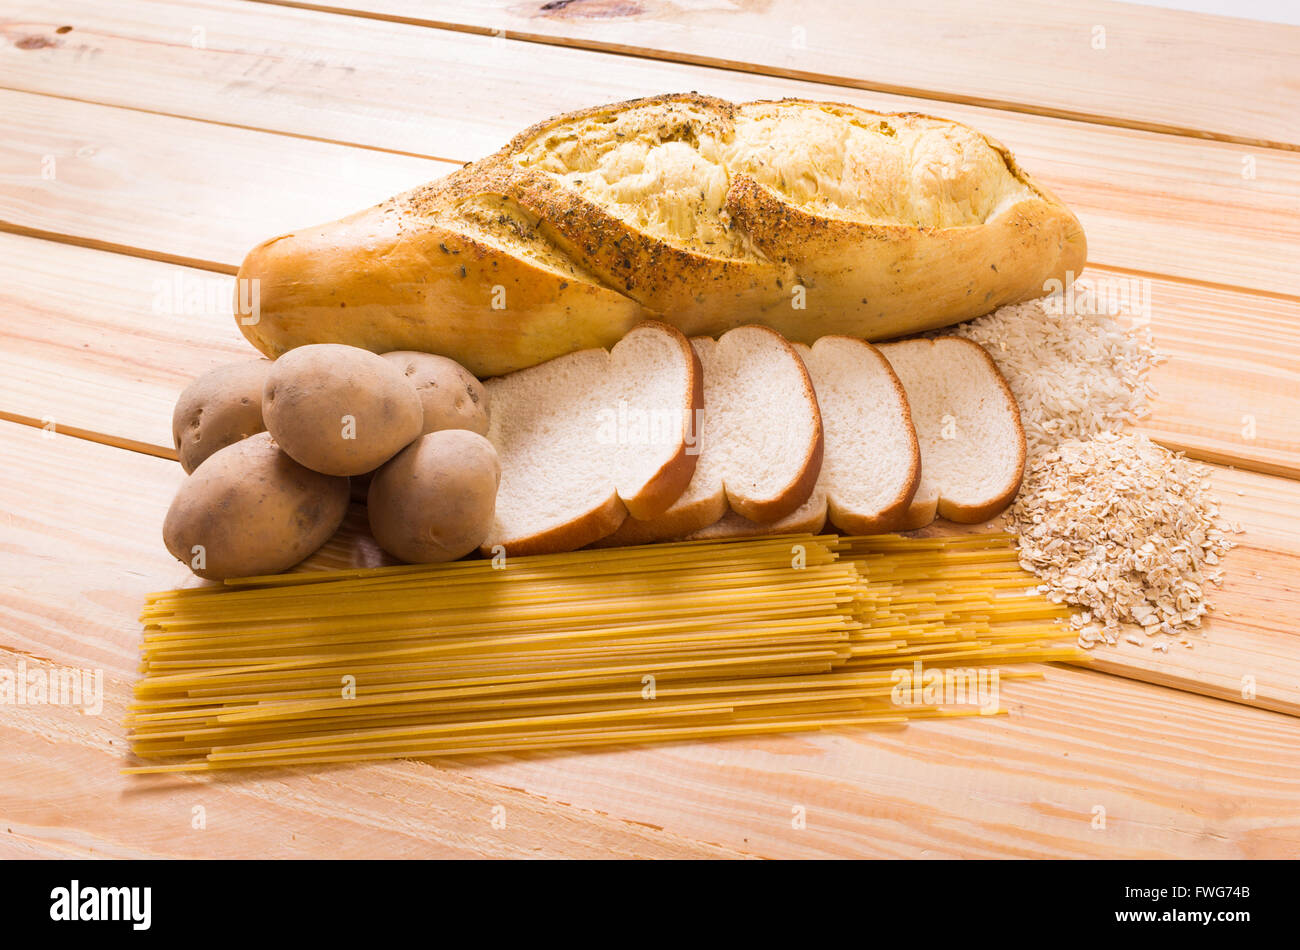 Group of carbohydrates for diet, bread, rice, oat, potatoes, pasta on wood table - Stock Image